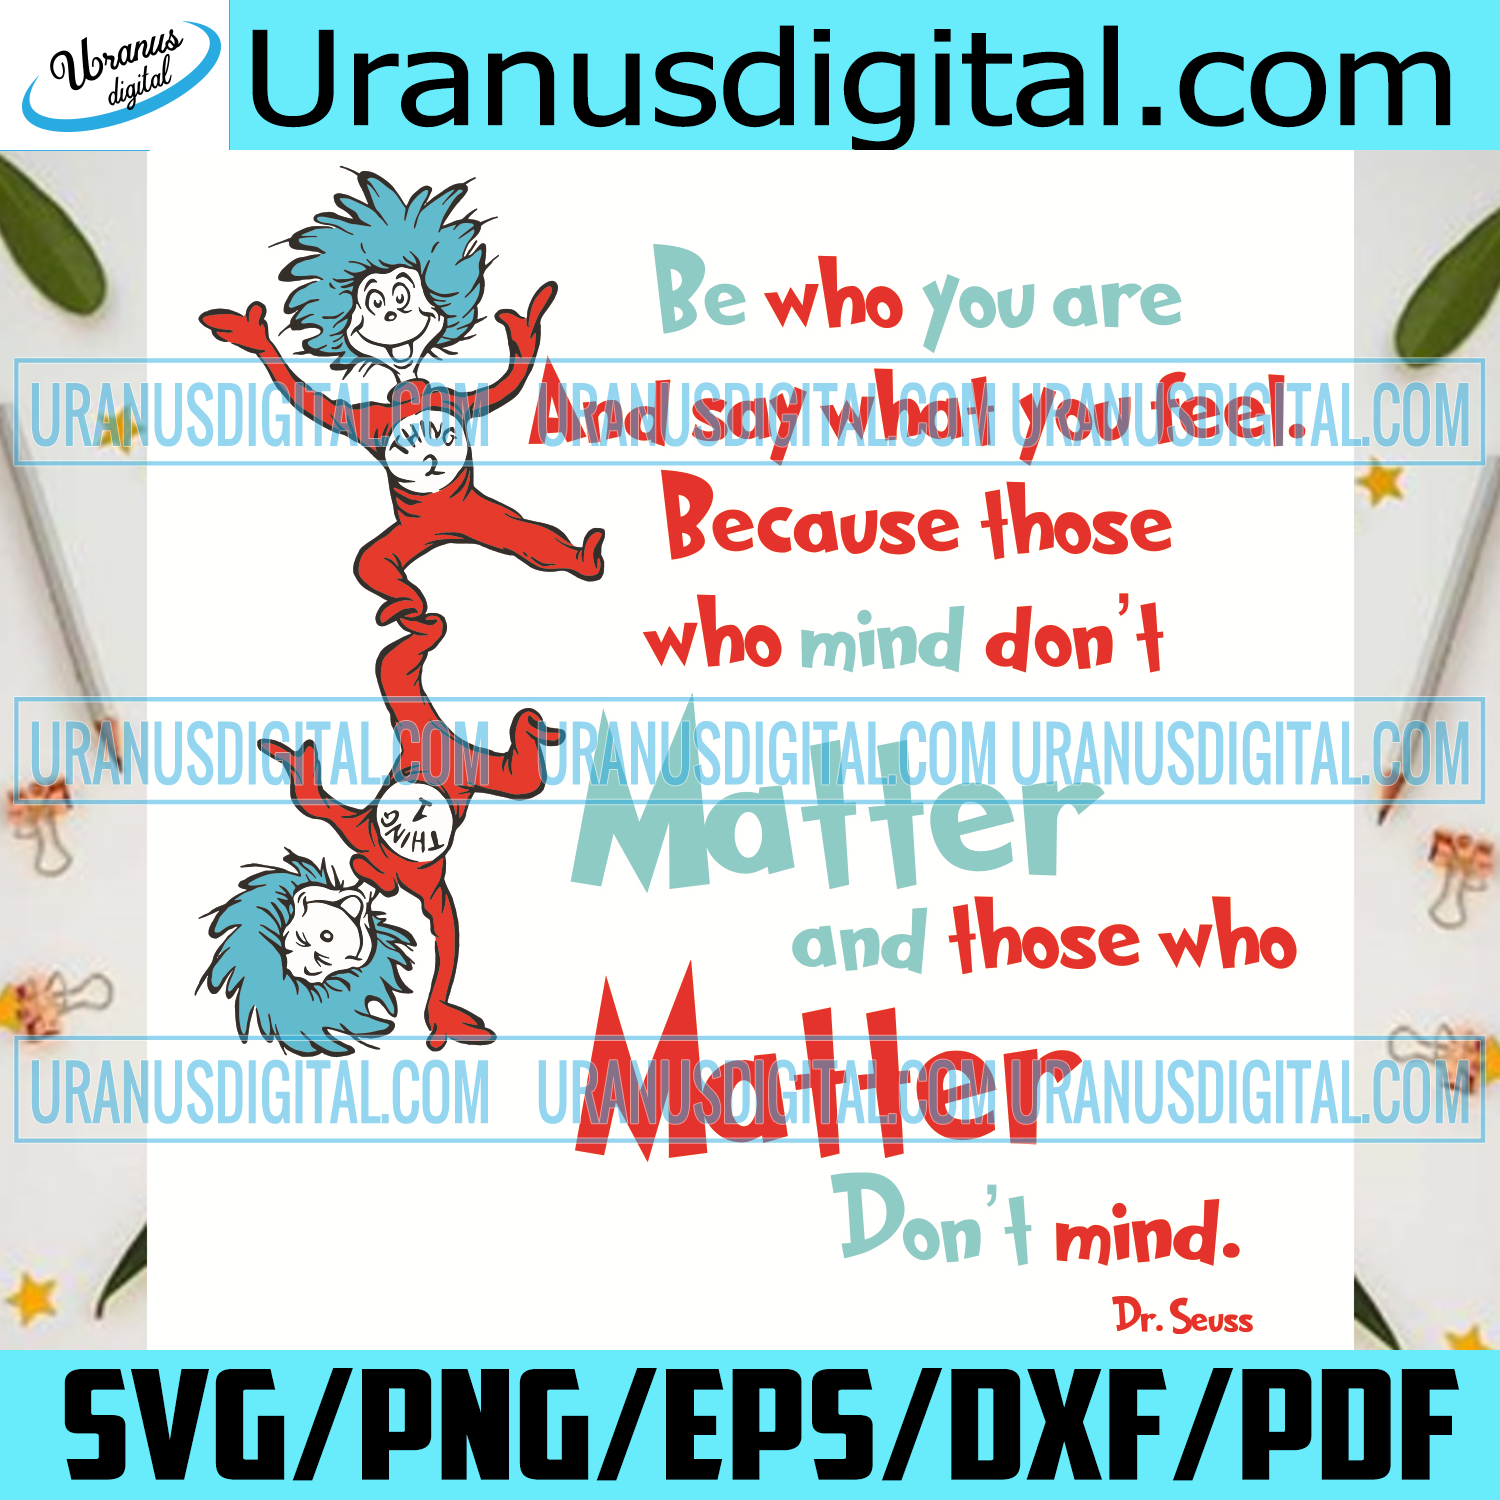 Be who you are and say what you feel svg, Dr Seuss Svg, Svg, The cat In The Hat, Cat In The Hat Svg, Be Who You Are, Say What Yu Feel, Thing 1 Thing 2 Svg, Funny Dr Seuss Svg, Svg, Dr Seuss Character